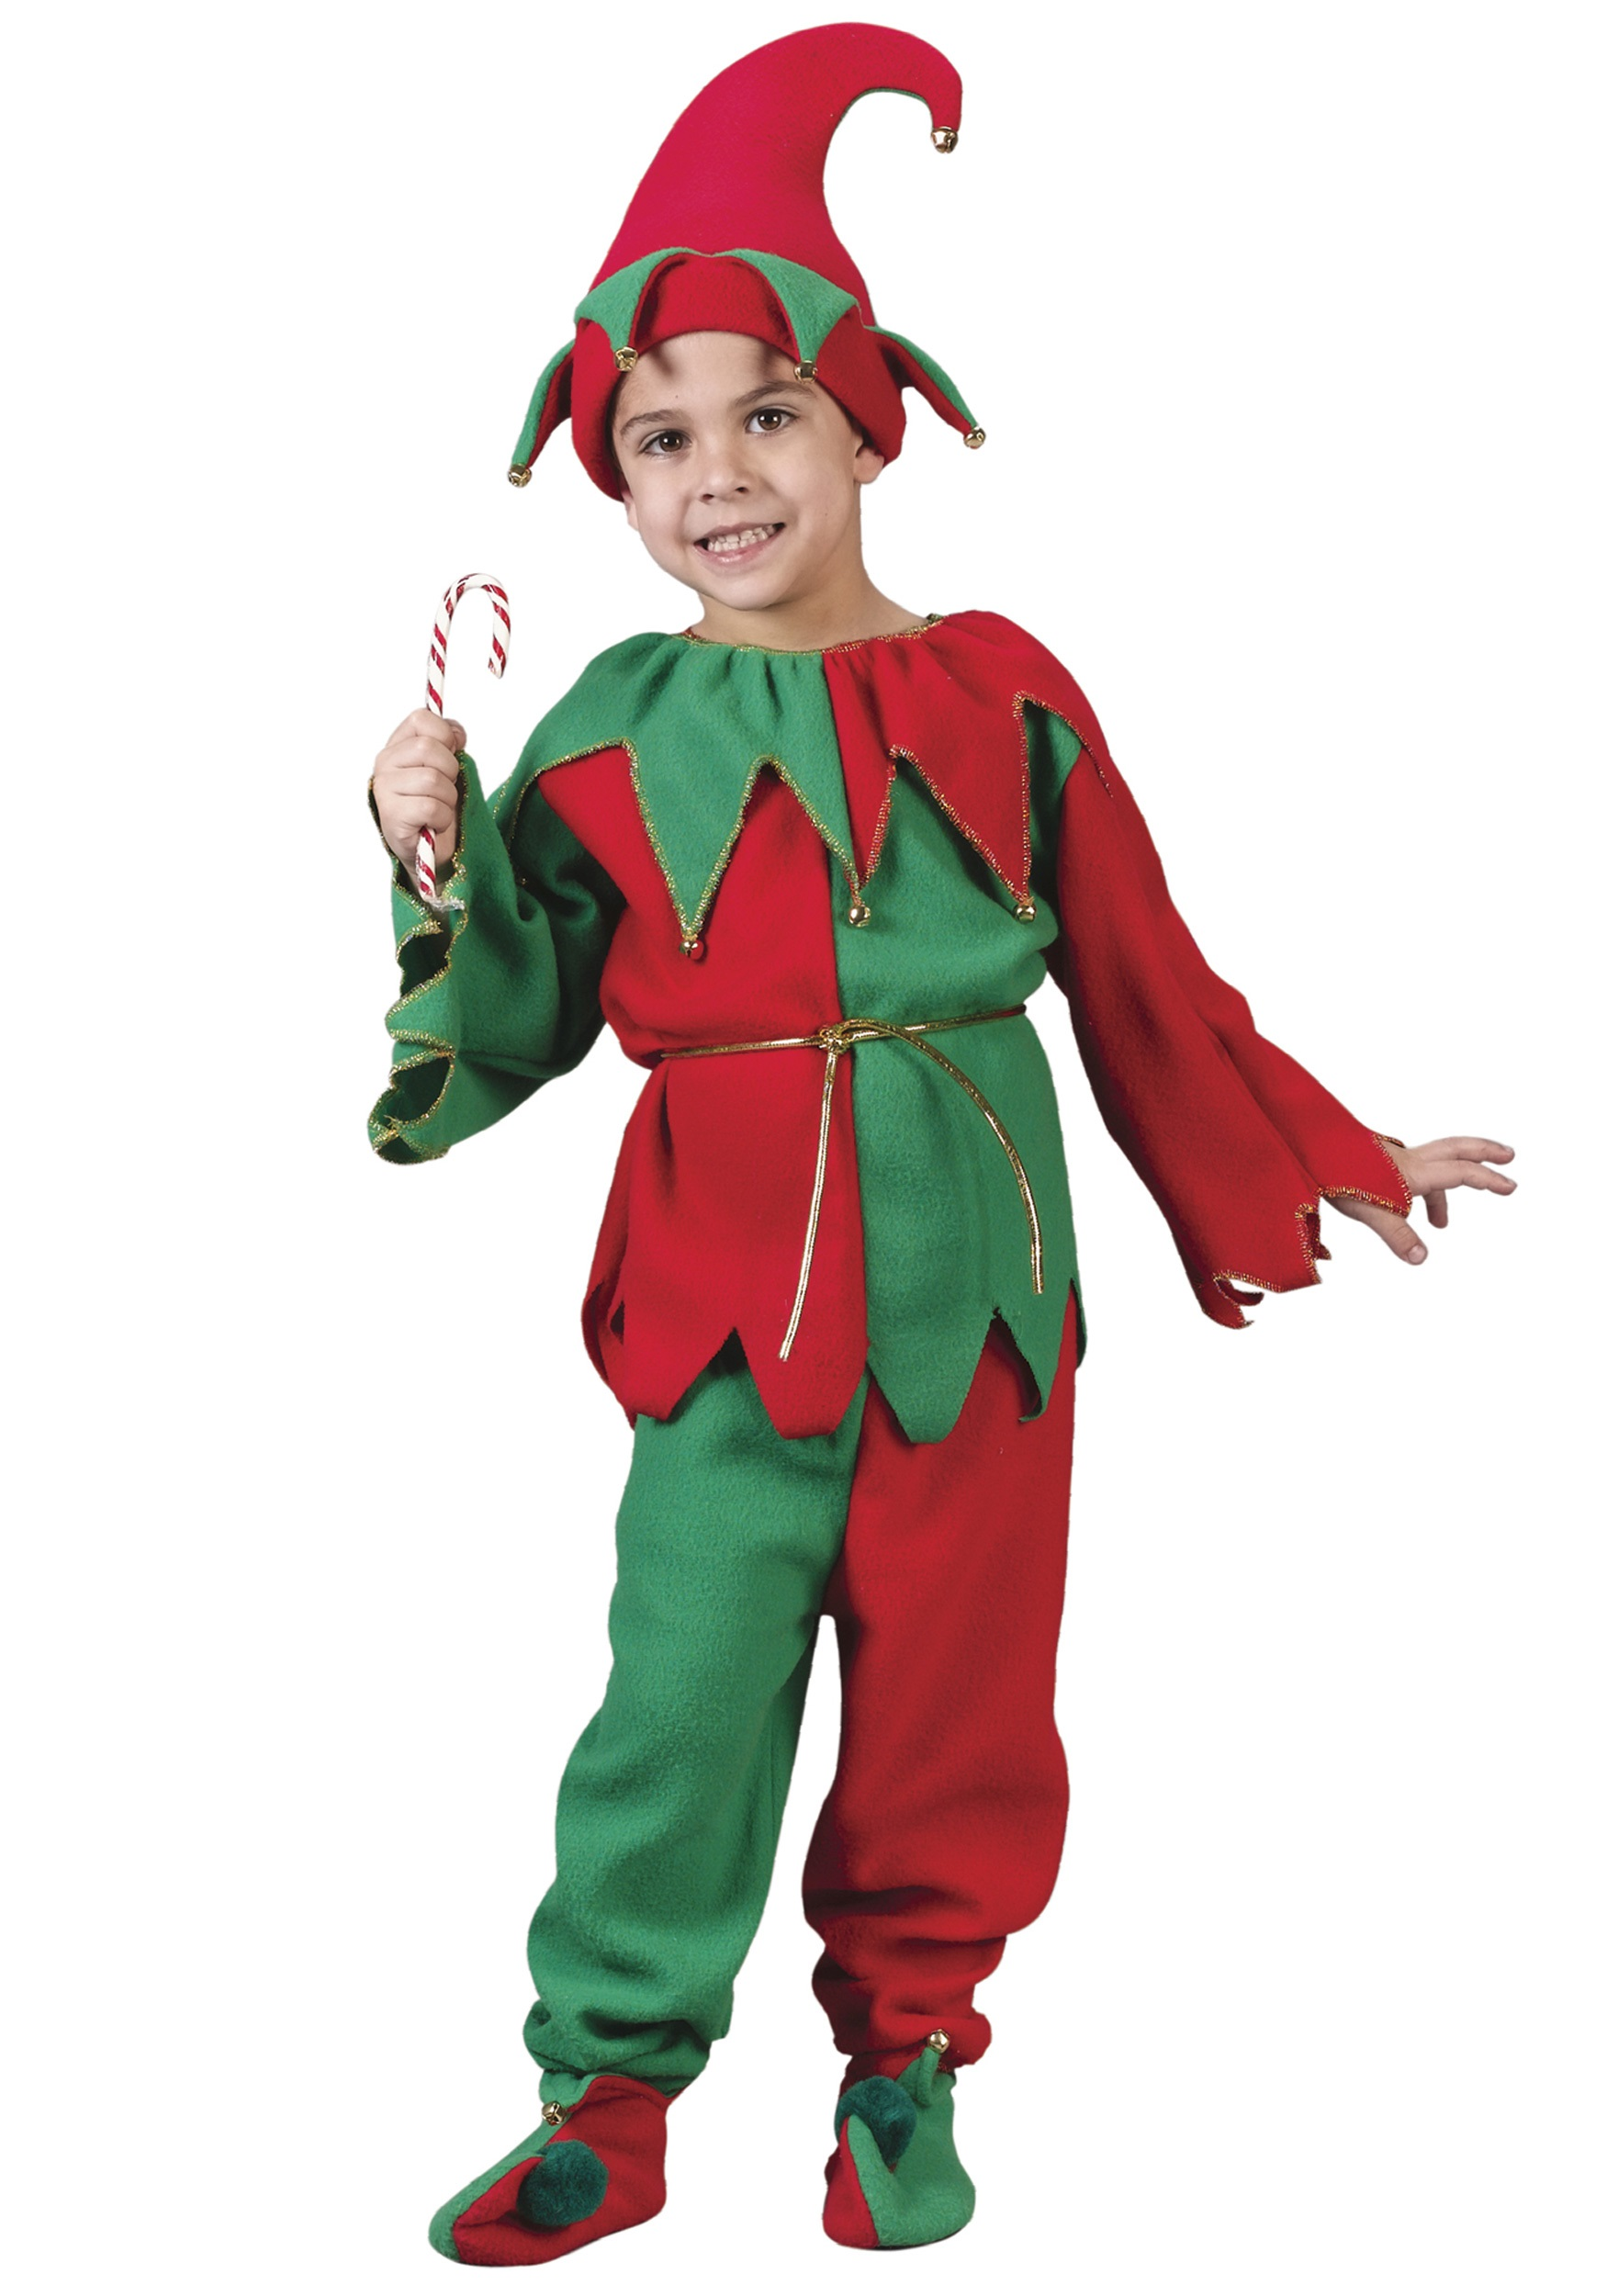 Kids Christmas Elf Costume - Holiday Elf Christmas Costumes